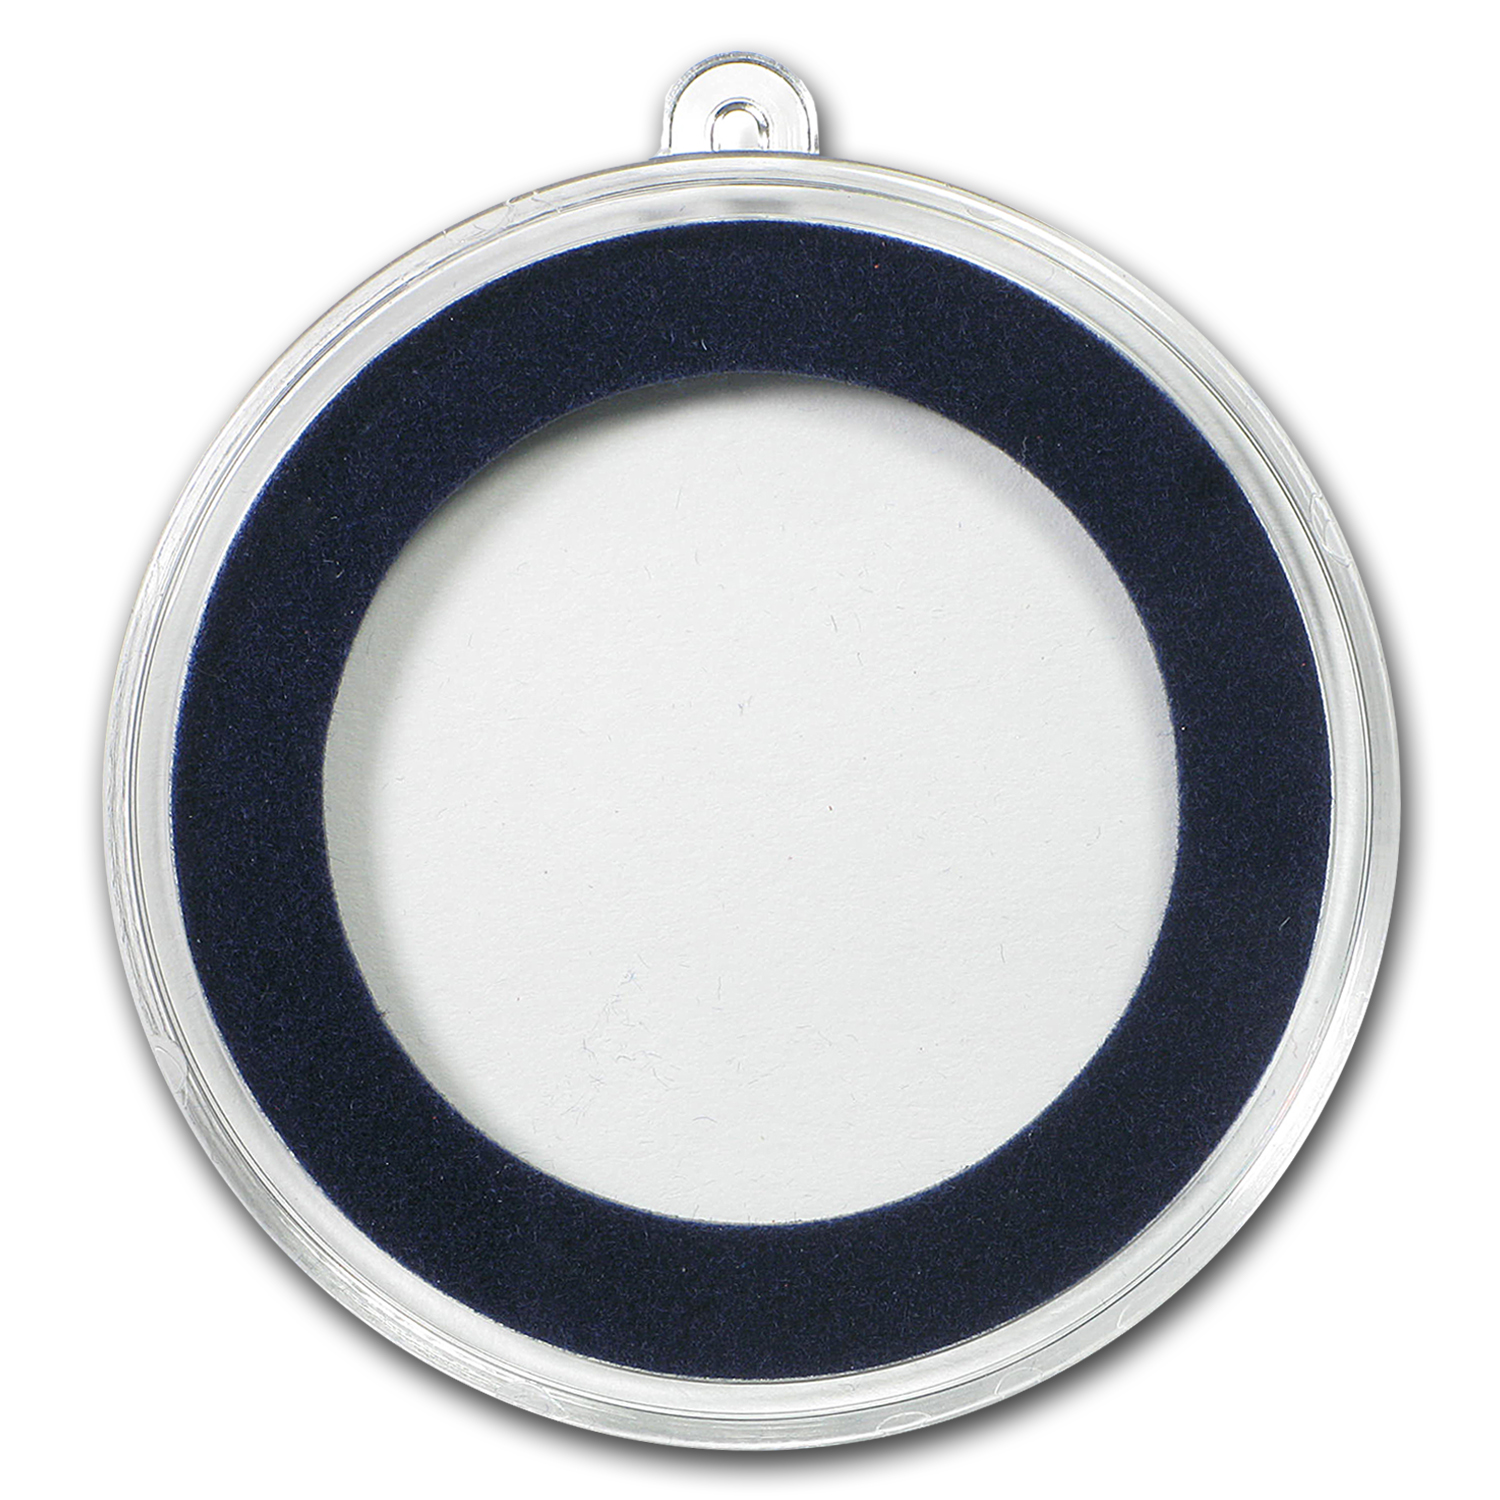 Ornament Capsule for Silver Rounds - 34mm (Dark Blue Ring)